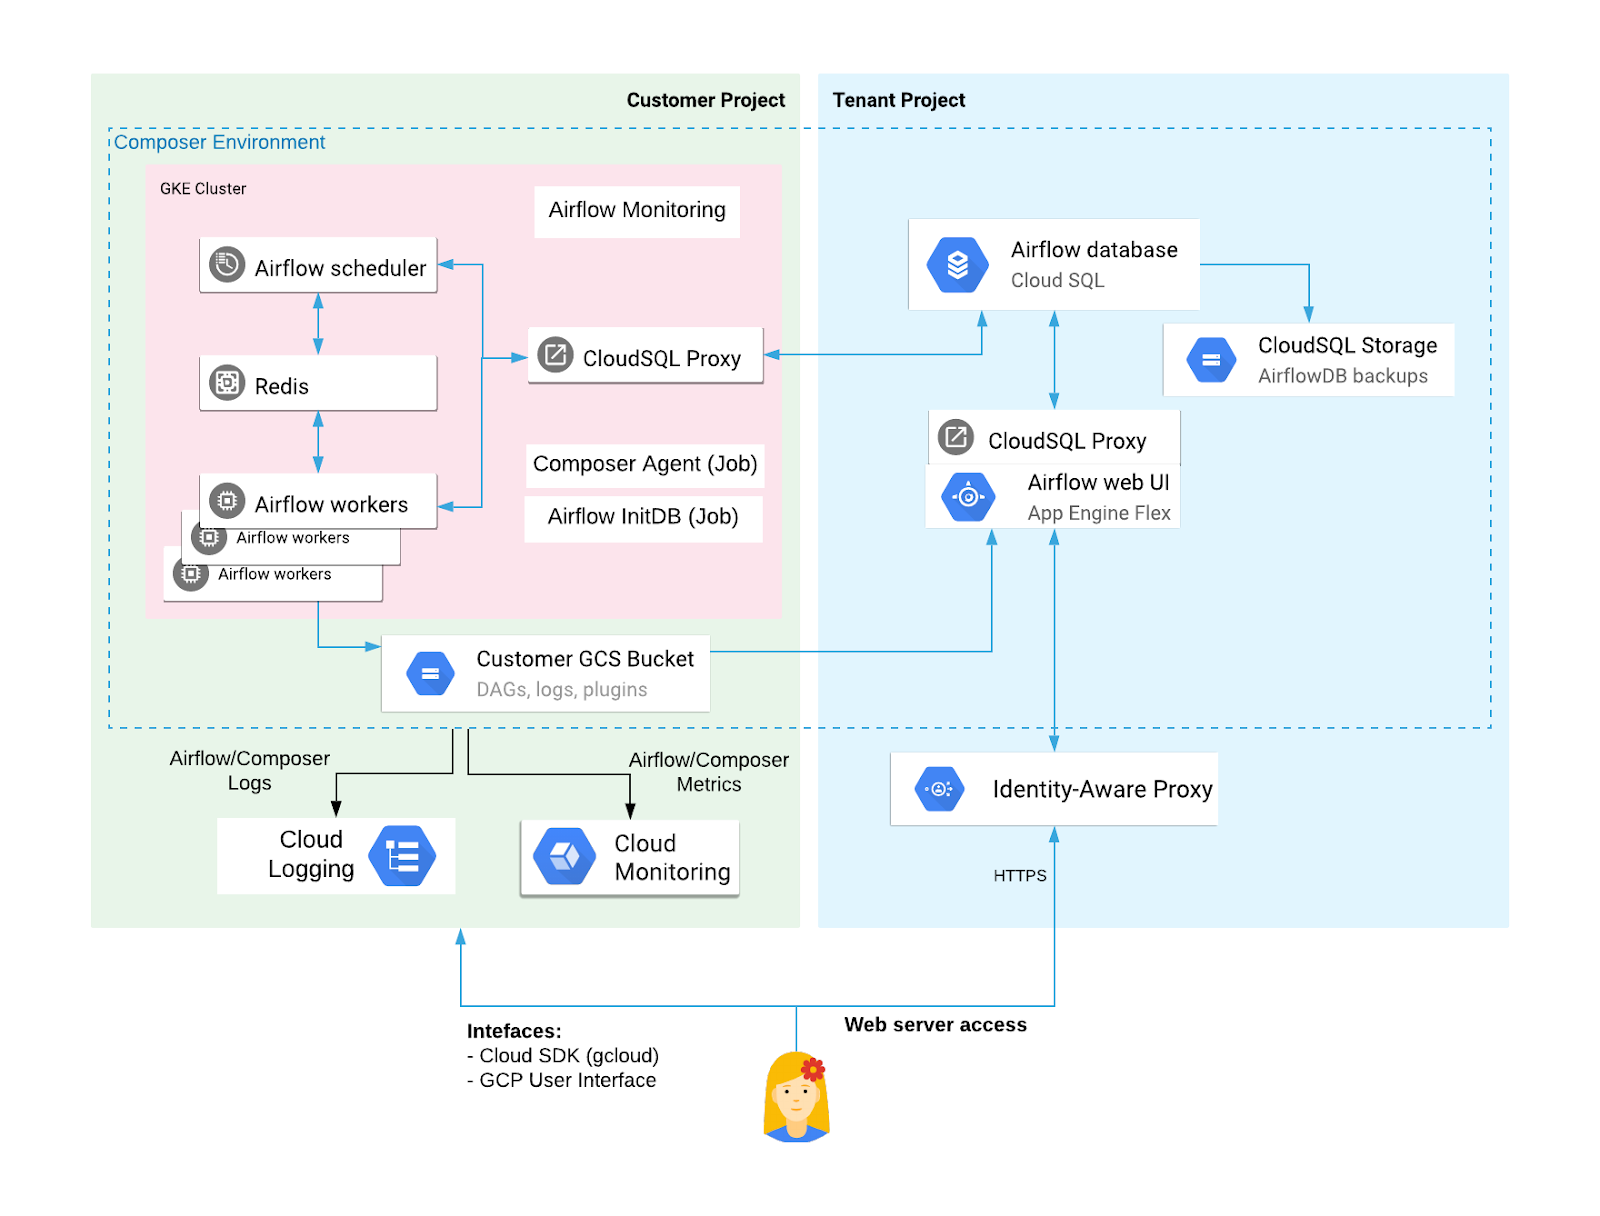 Public IP Cloud Composer environment resources in the tenant project and the customer project (click to enlarge)